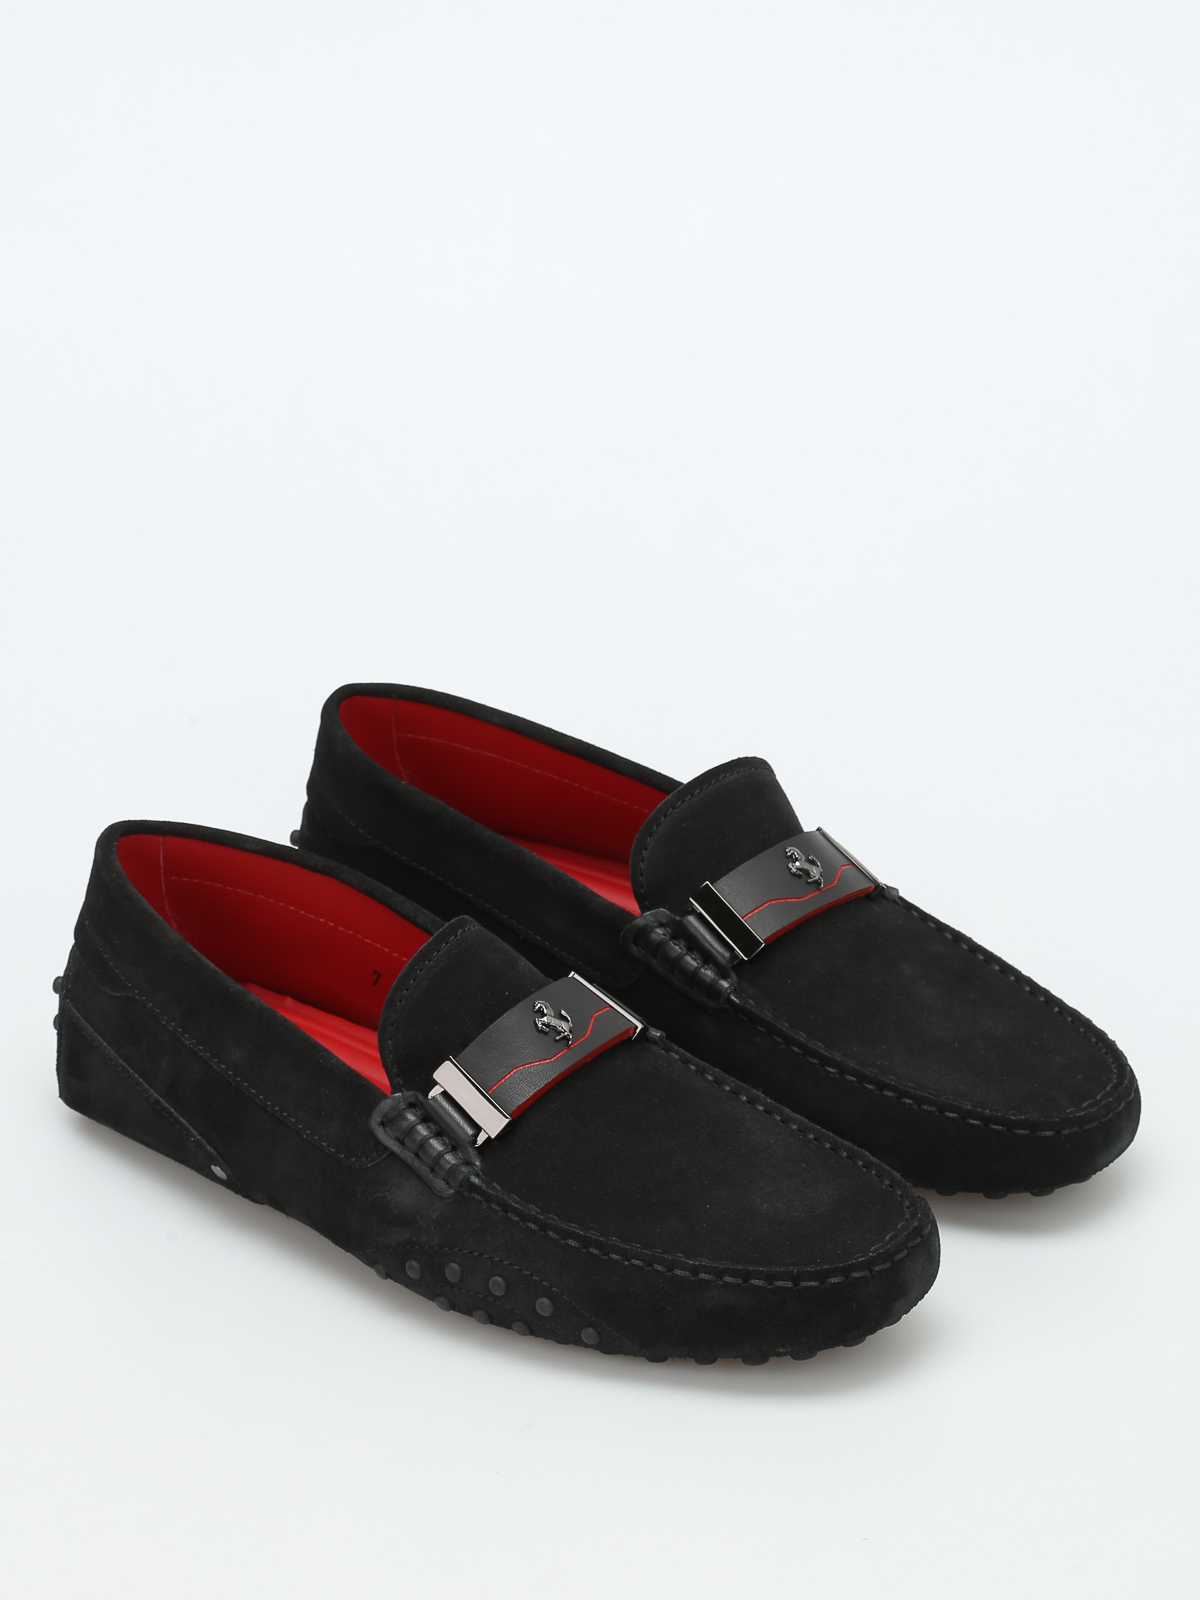 trimmed ferrari gommino driving product tod blue navy shoes leather lyst gallery tods normal nubuck s